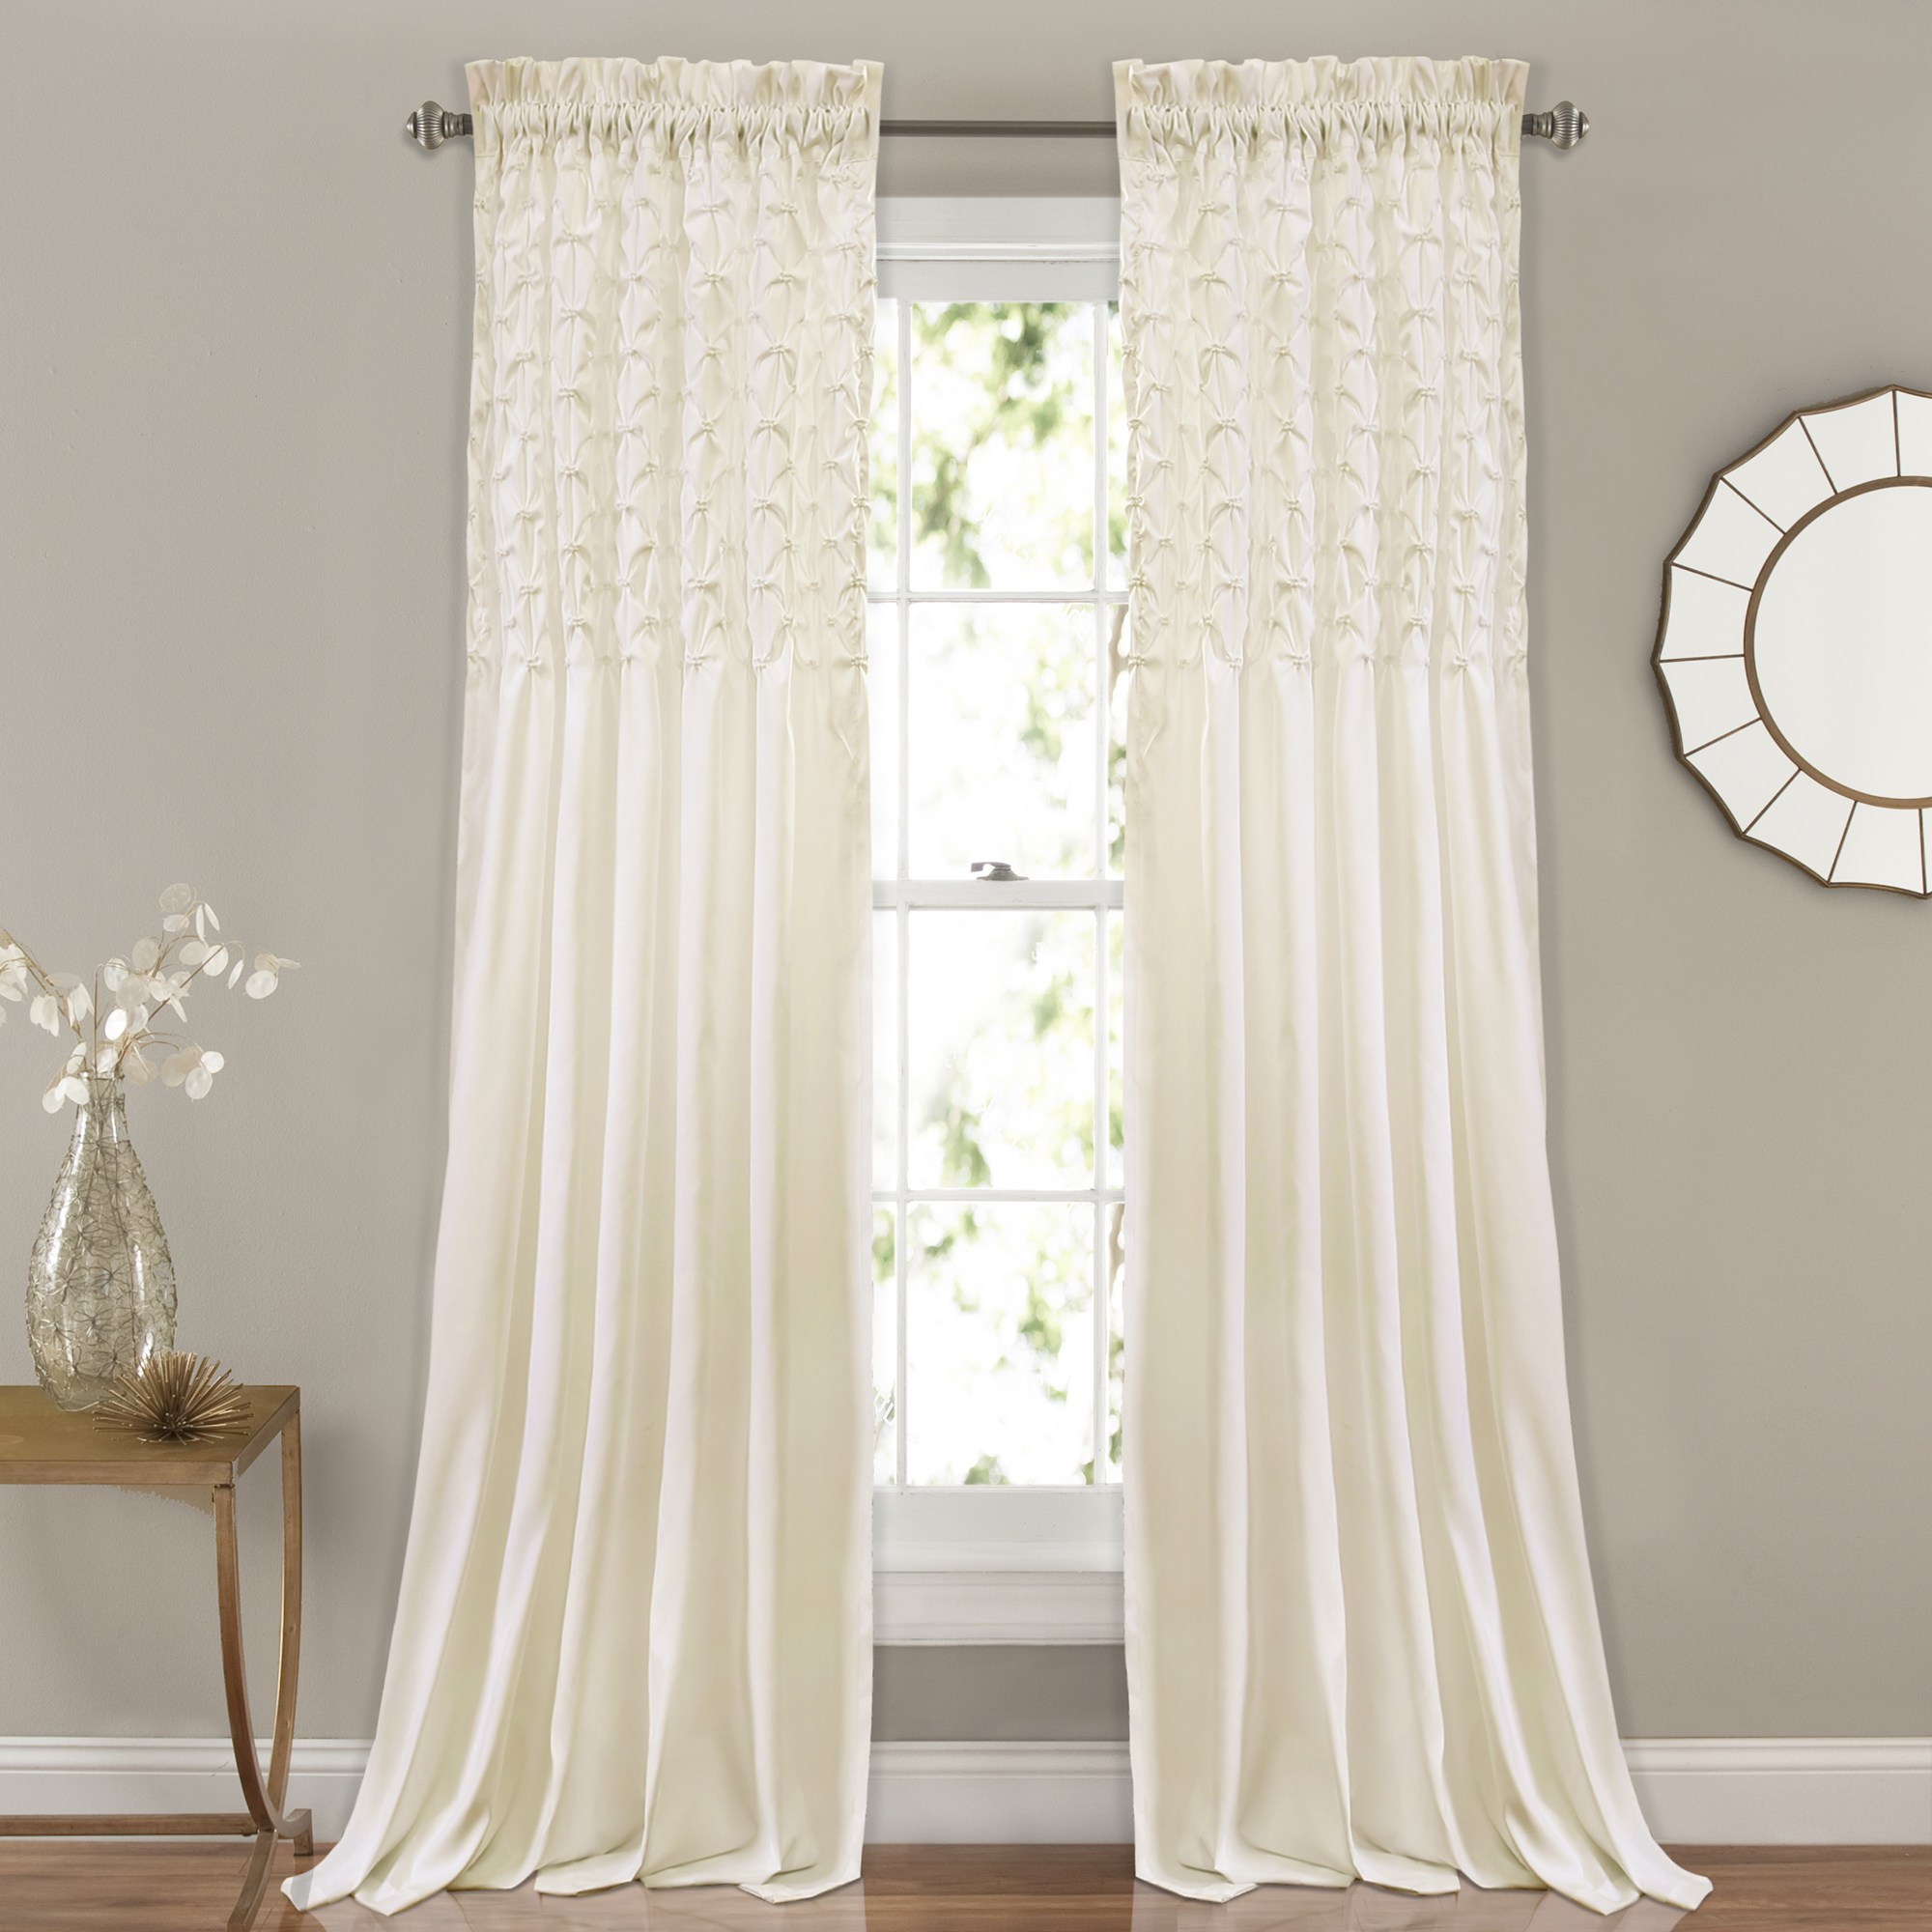 The Gray Barn Sunset Hollow Window Curtain Panel Pair Pertaining To The Gray Barn Kind Koala Curtain Panel Pairs (View 4 of 30)